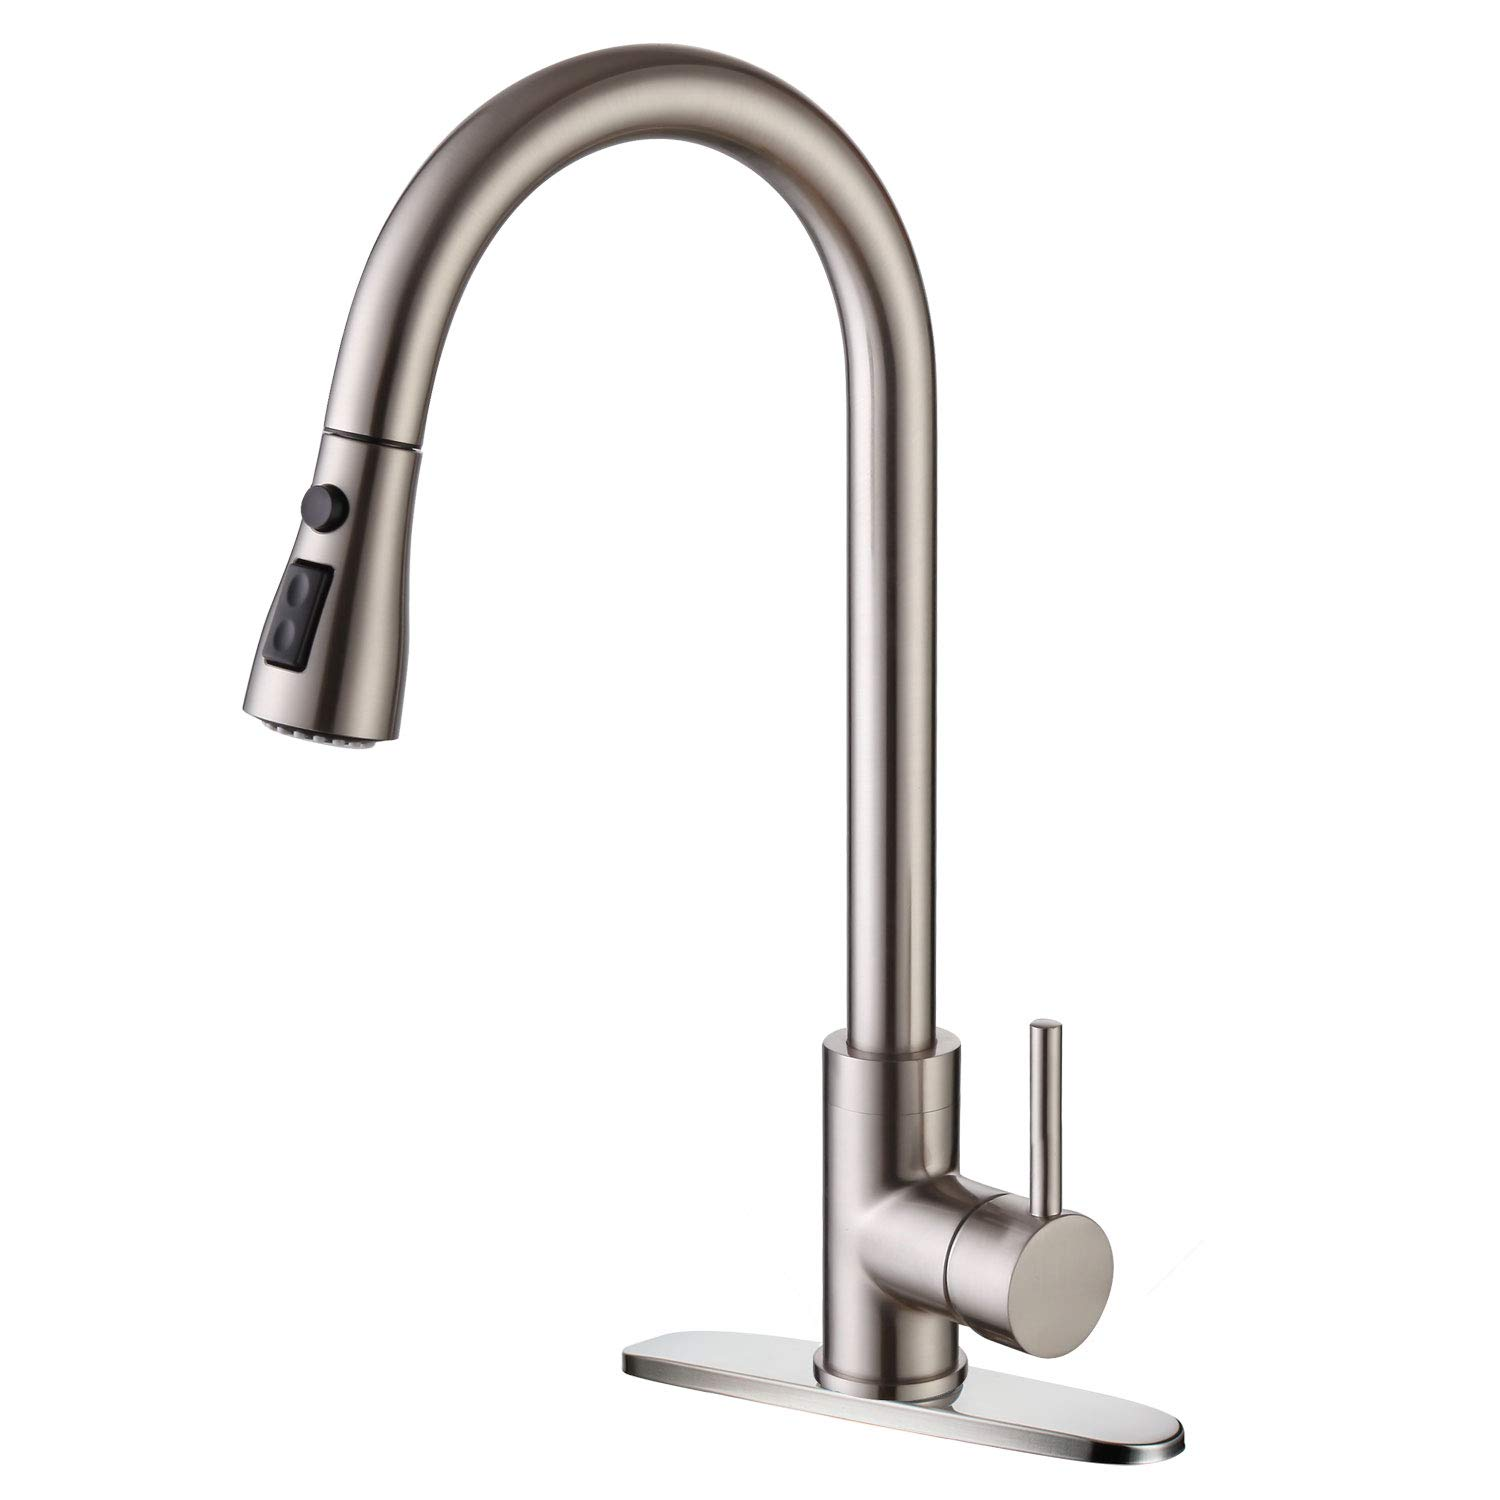 Moone Commercial Single Handle Kitchen Faucet Pull Down Sprayer Pull Out Spray Sink Faucets Stainless Steel Brushed Nickel